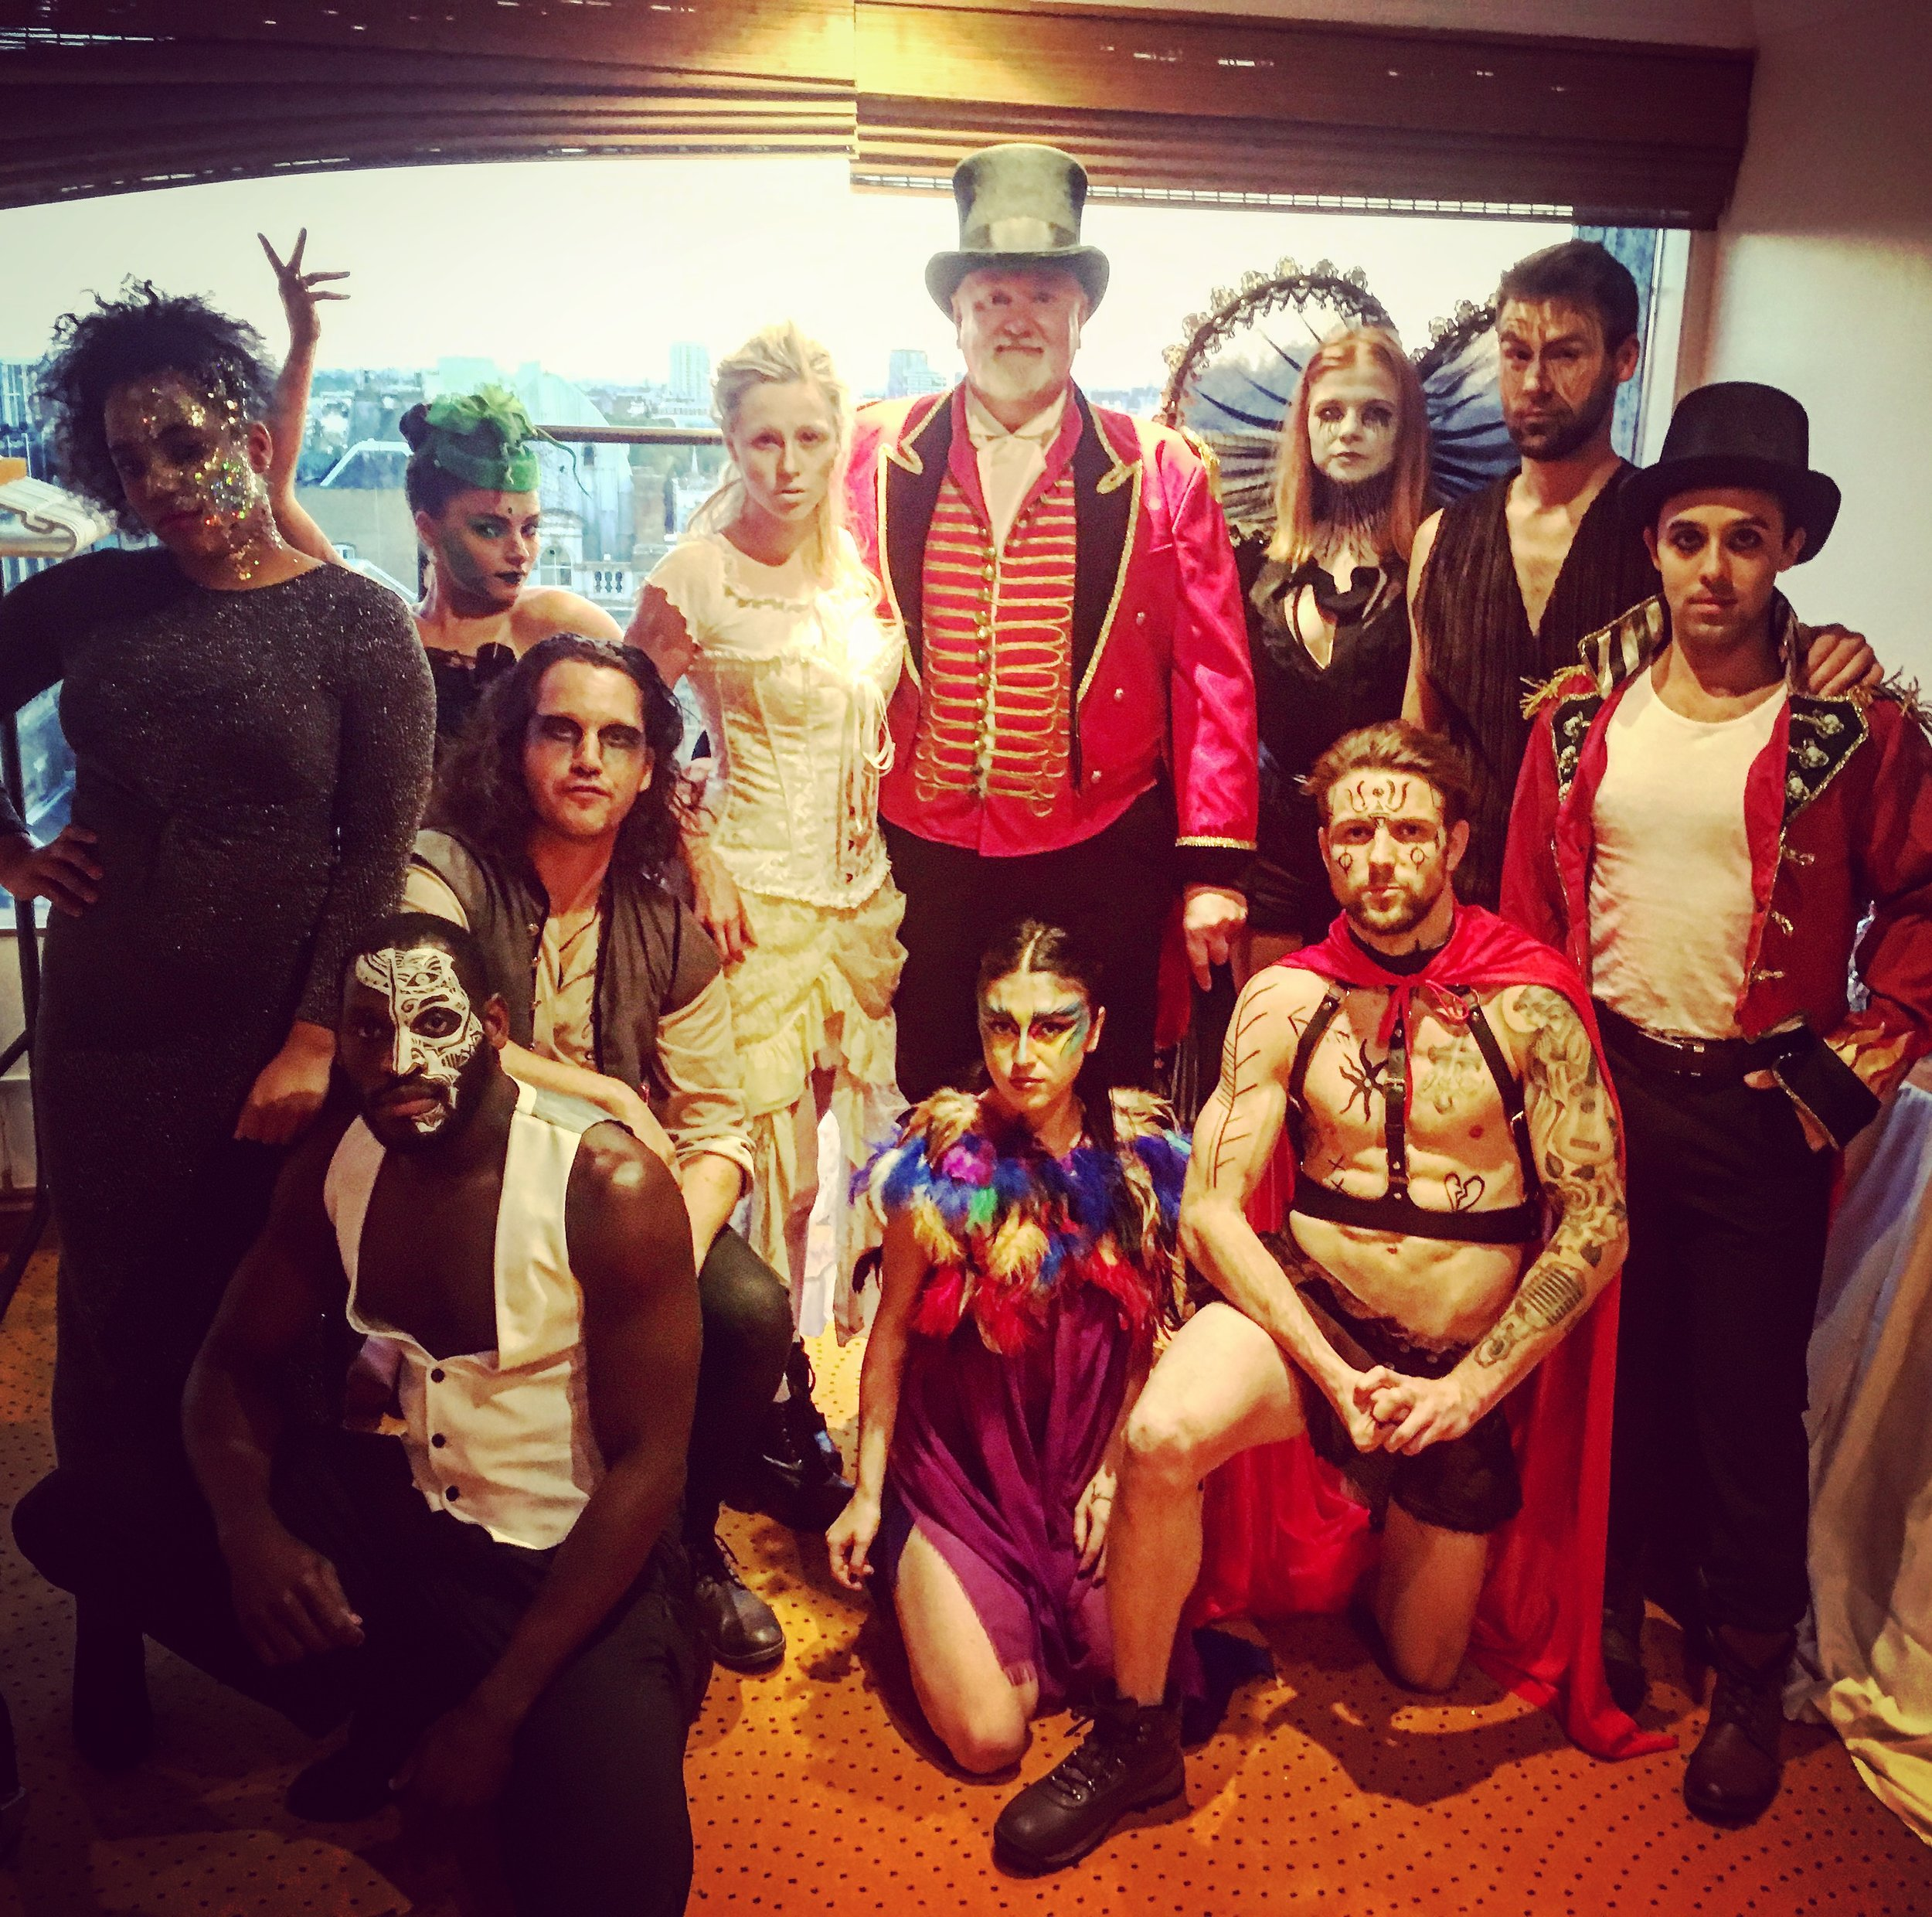 Our circus performers about to flash mob the party with the birthday boy in the middle!